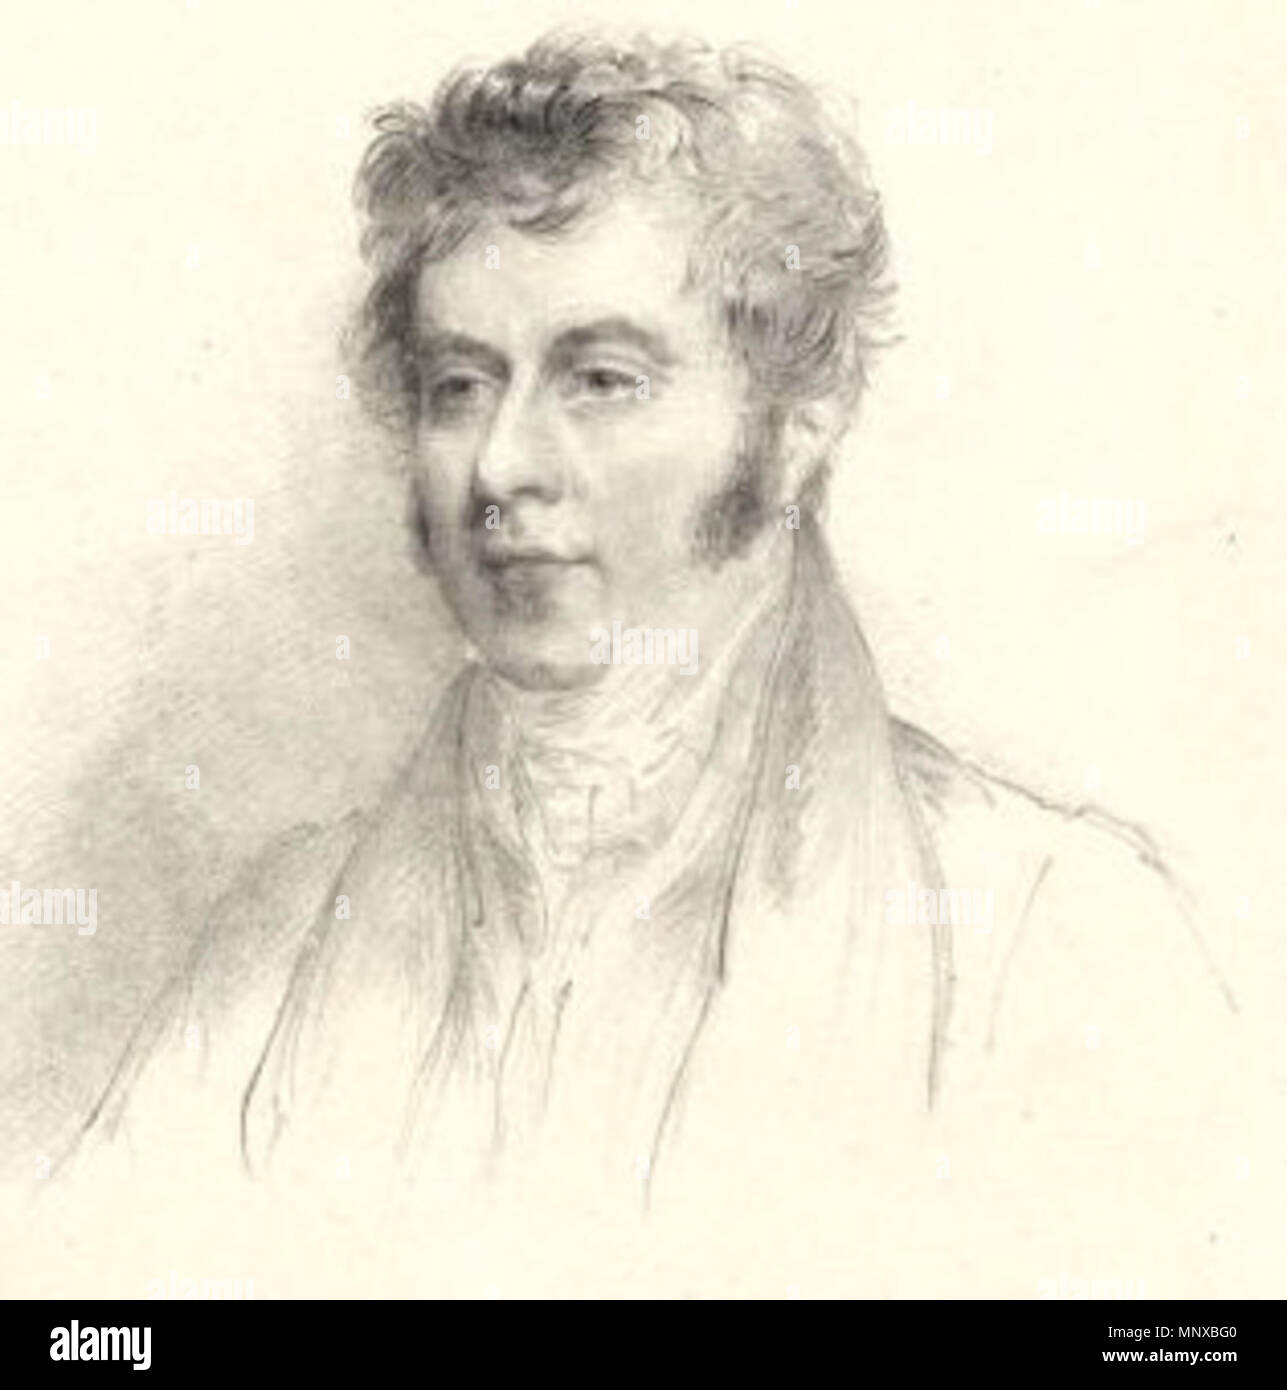 . Sir Robert Wilmot Horton - Sir Robert John Wilmot-Horton, 3rd Baronet, GCH (21 December 1784 – 31 May 1841) was a British politician during the first third of the 19th century. He was a member of the Canningite faction of the Tory party and served as Member of Parliament for Newcastle-under-Lyme from 1818 until 1830. between 1820 and 1829.   Richard James Lane  (1800–1872)     Alternative names Richard J. Lane  Description English engraver and lithographer  Date of birth/death 16 February 1800 21 November 1872  Location of birth Berkeley Castle  Authority control  : Q7326816 VIAF: 59348682 I - Stock Image